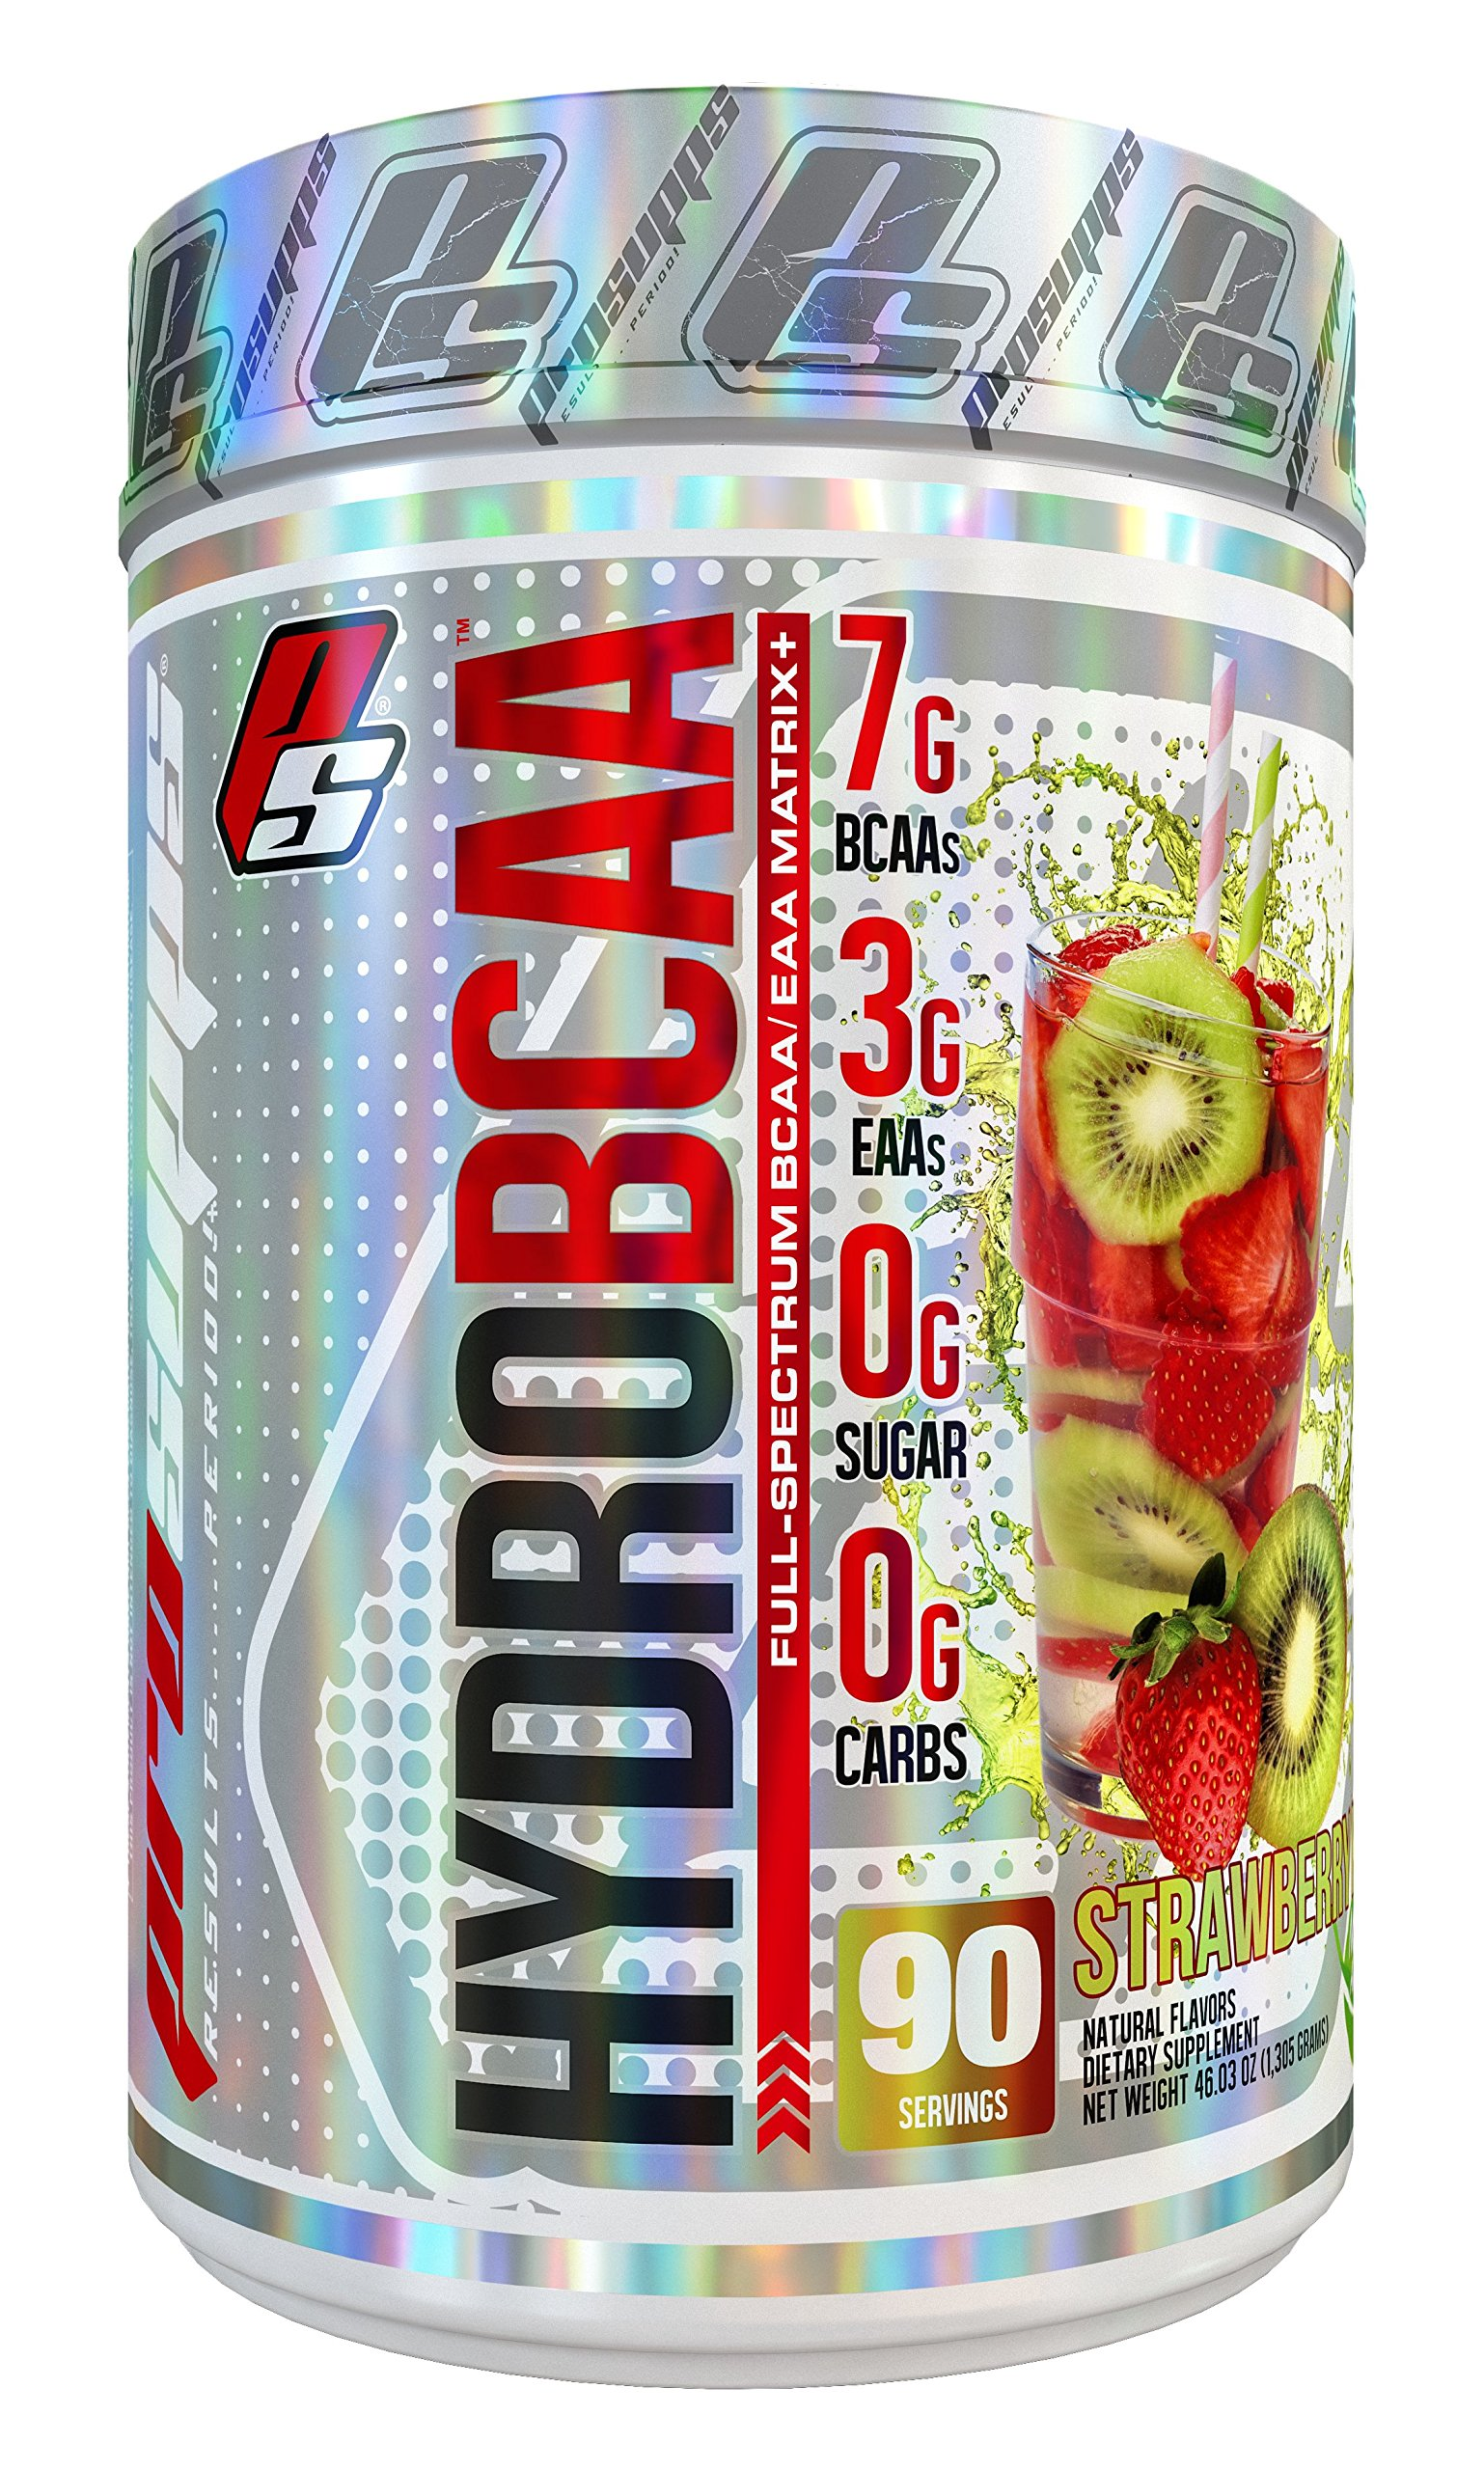 HydroBCAA BCAA / EAA Full Spectrum, 7g BCAAs, 3g EAAs, 0g Sugar, 0g Carbs, 90 Servings, 46.03 oz. (Stawberry Kiwi Flavor)